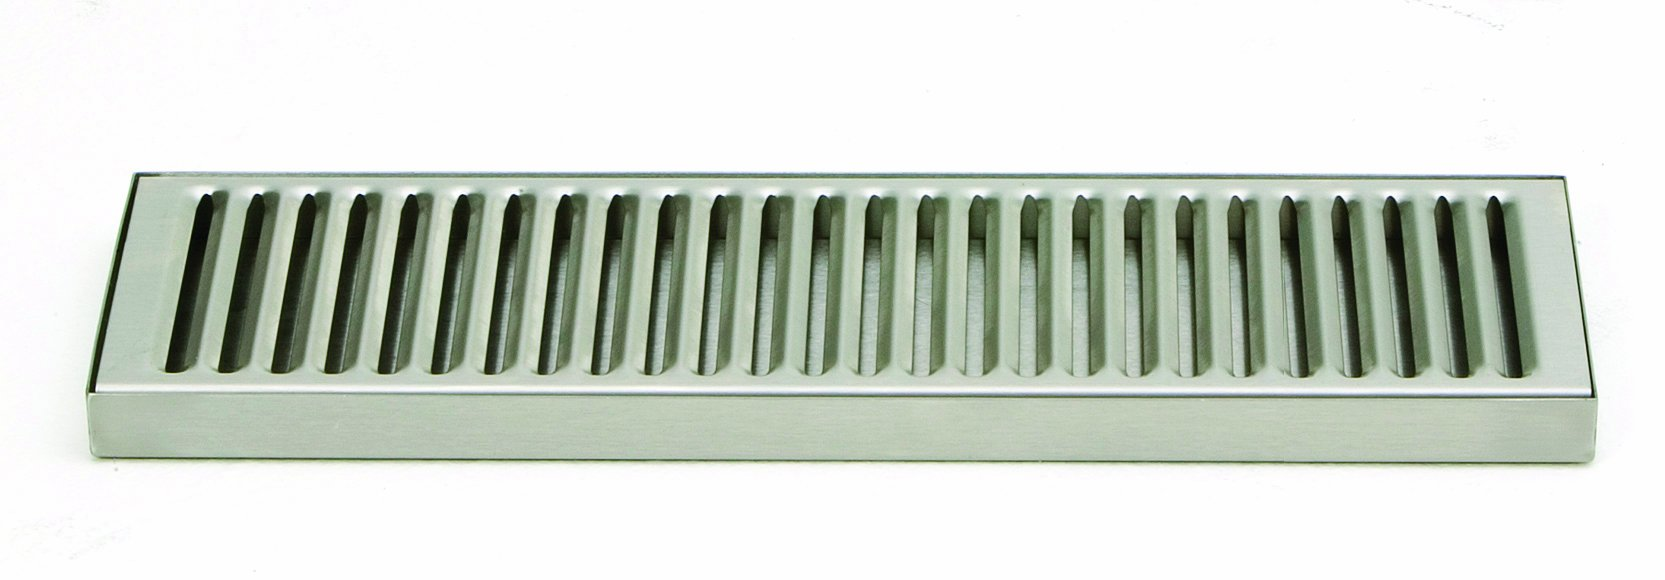 """Wilbur Curtis  Metal Drip Tray, 13"""" - Stainless Steel Food Service and Restaurant Drip Tray - DT-13 (Each)"""